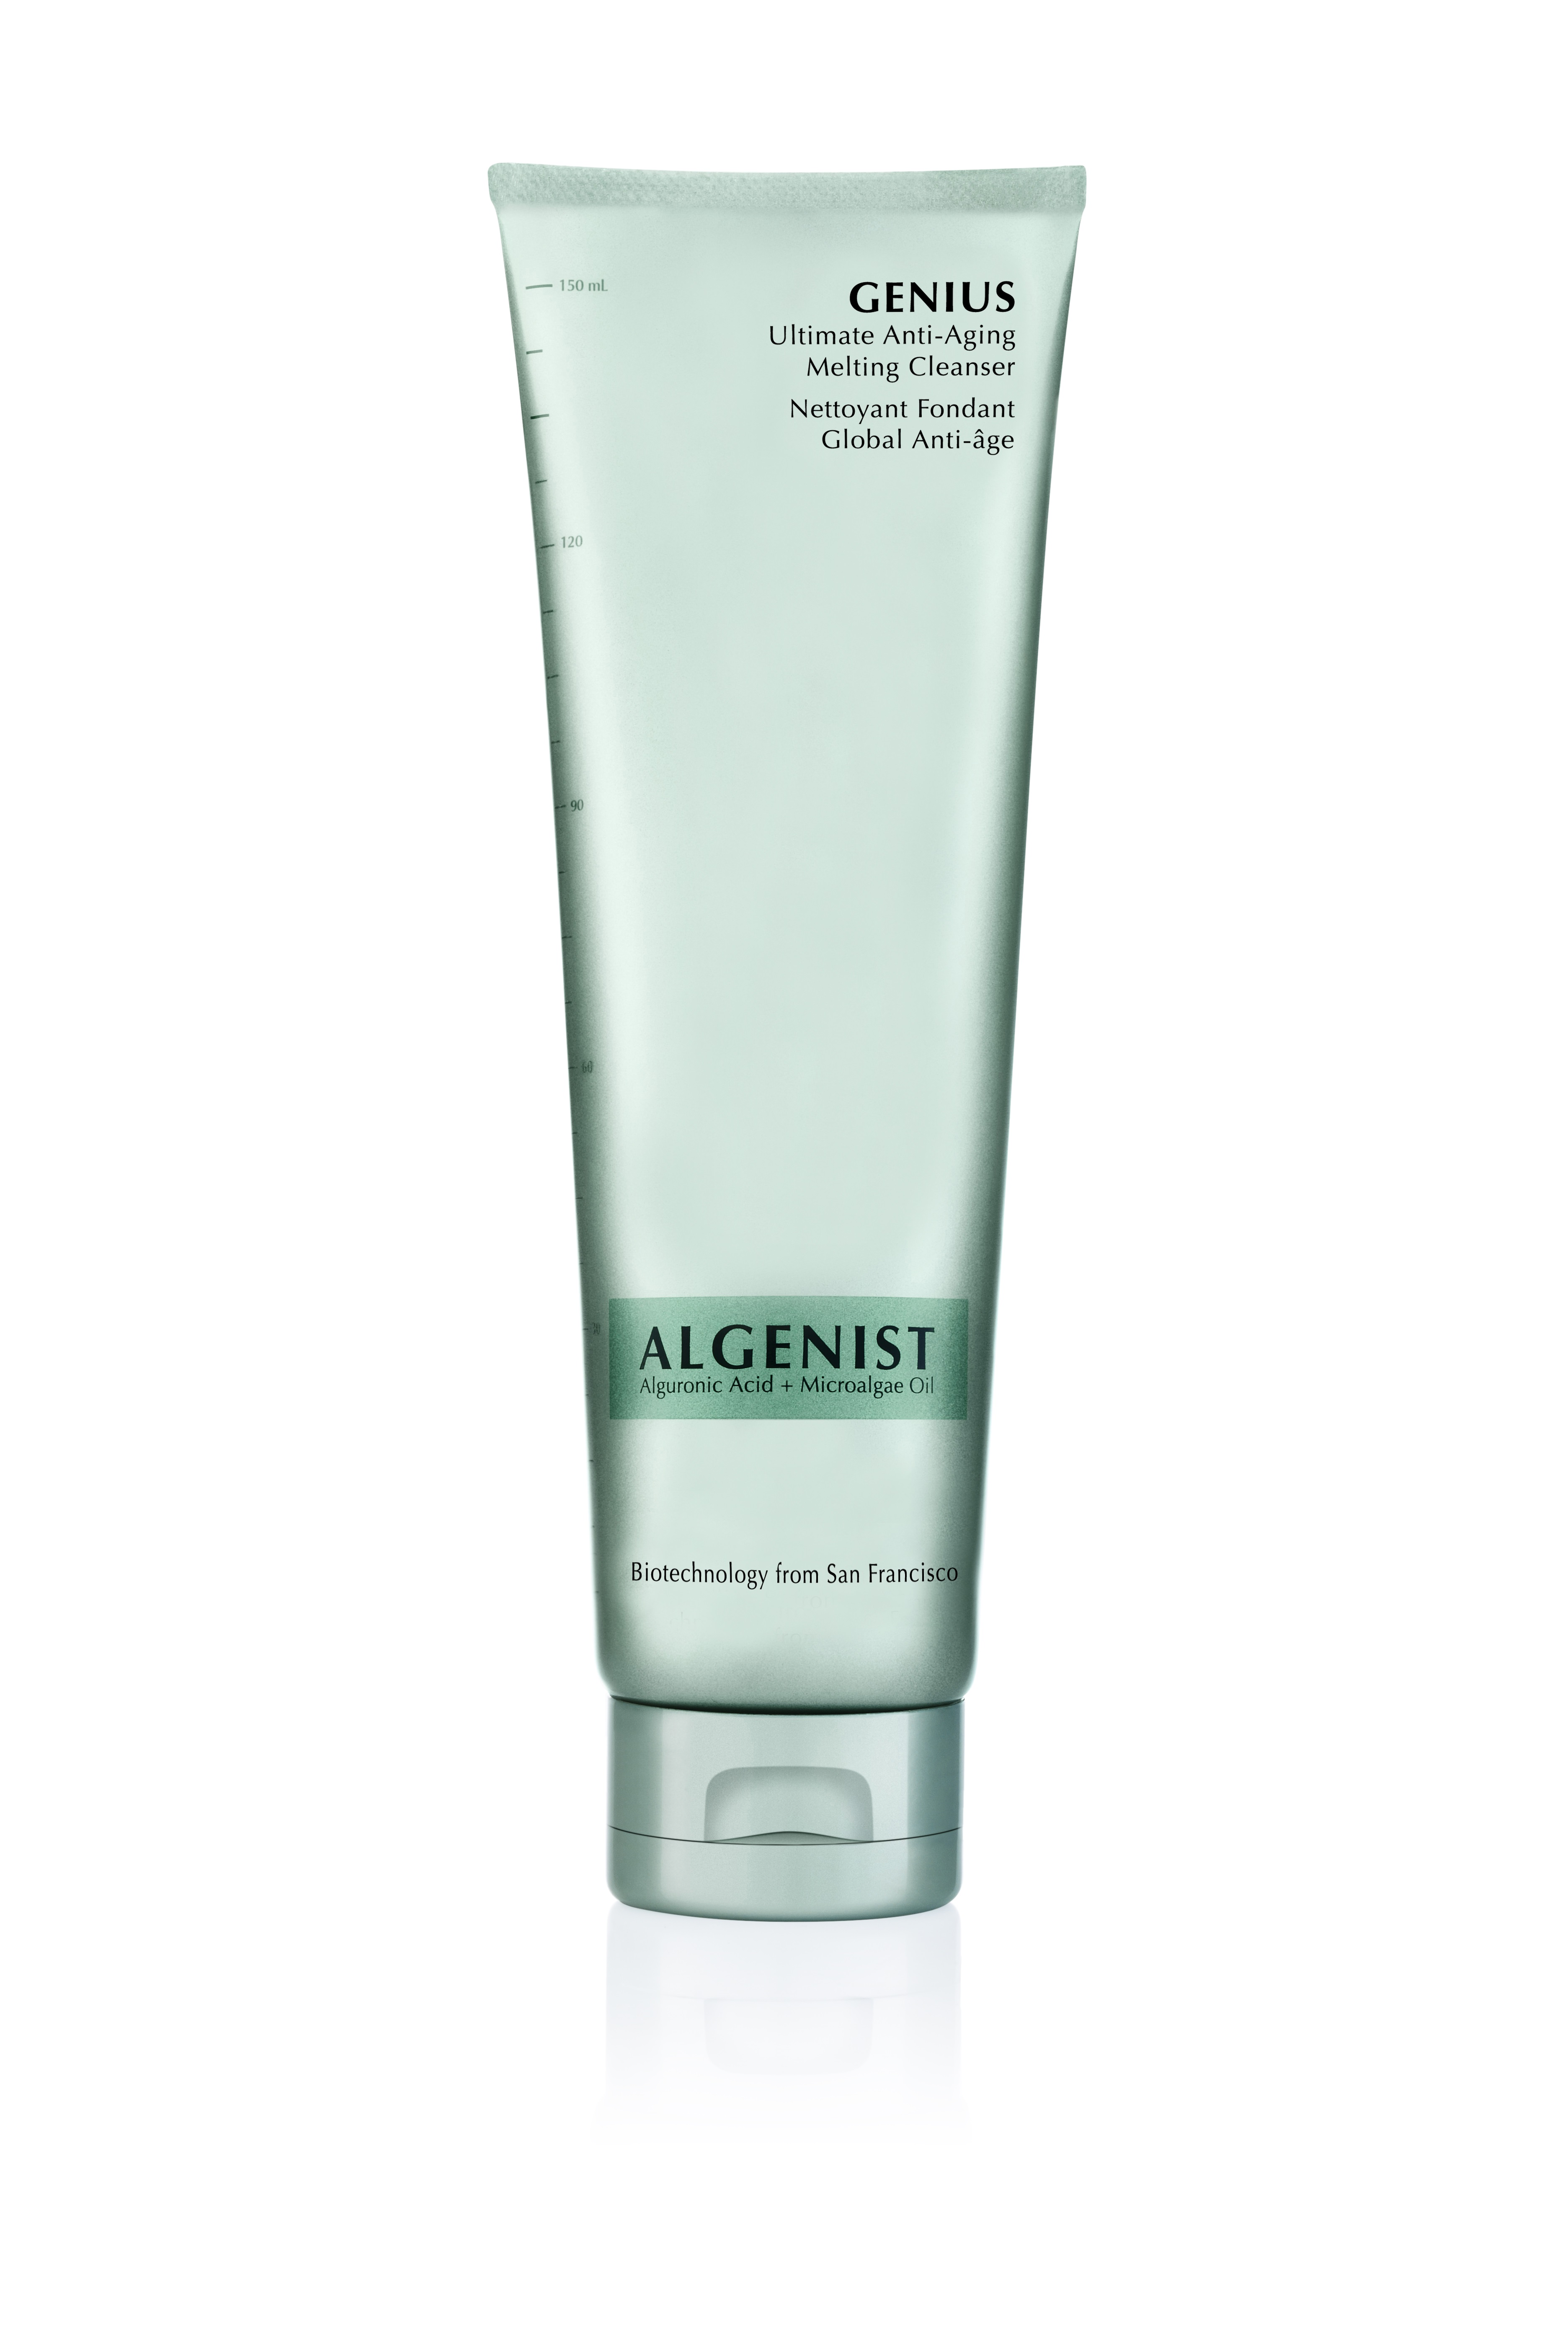 Algenist - Genius Cleanser